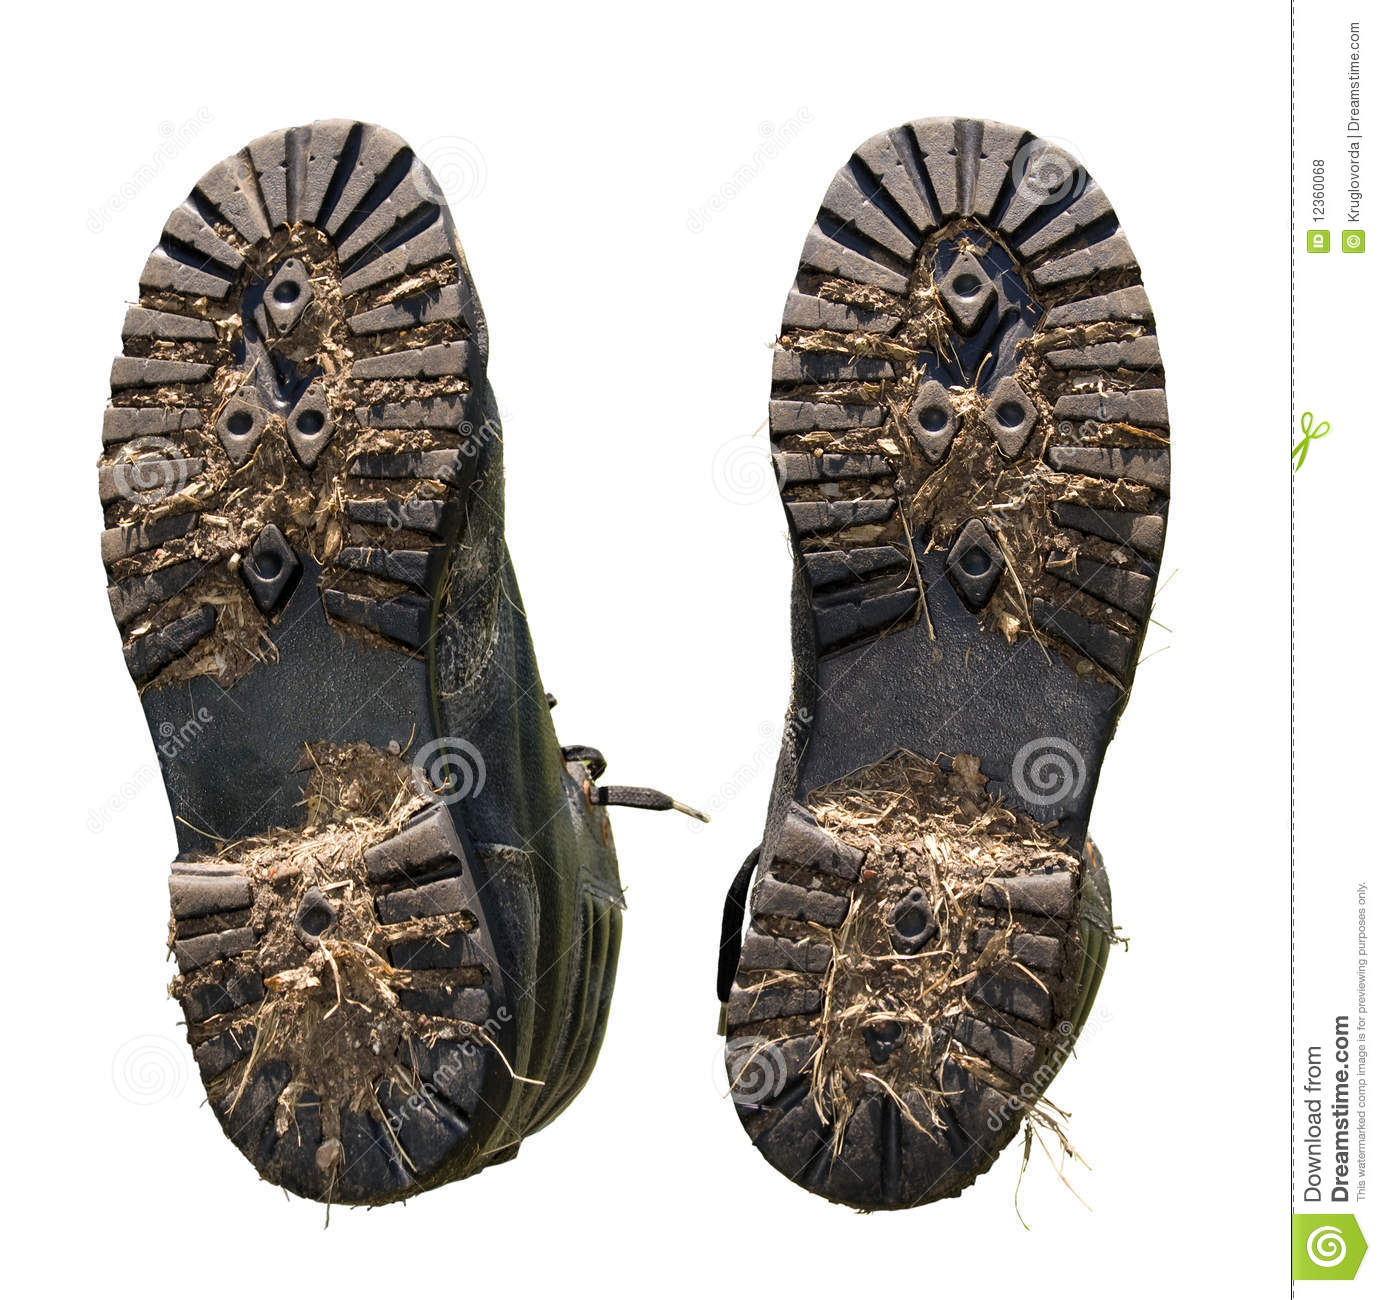 f8ee18610da5 Dirty soles of shoes stock photo. Image of pair